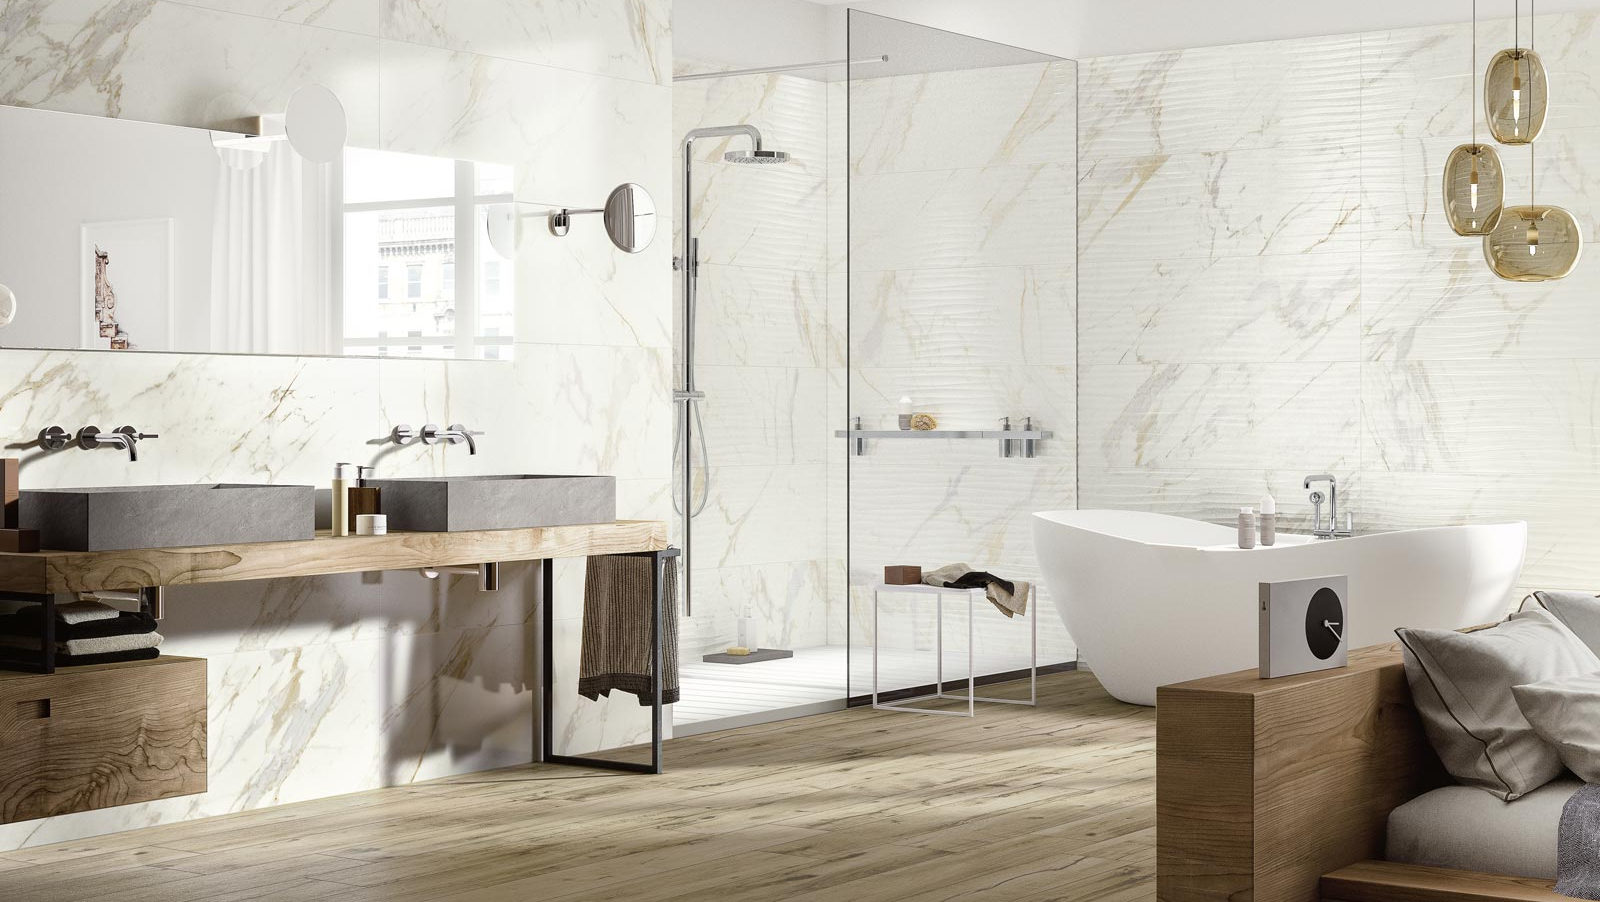 Stupendous Carini Stores Ltd Your One Stop Bathroom And Tile Outlet Home Interior And Landscaping Oversignezvosmurscom